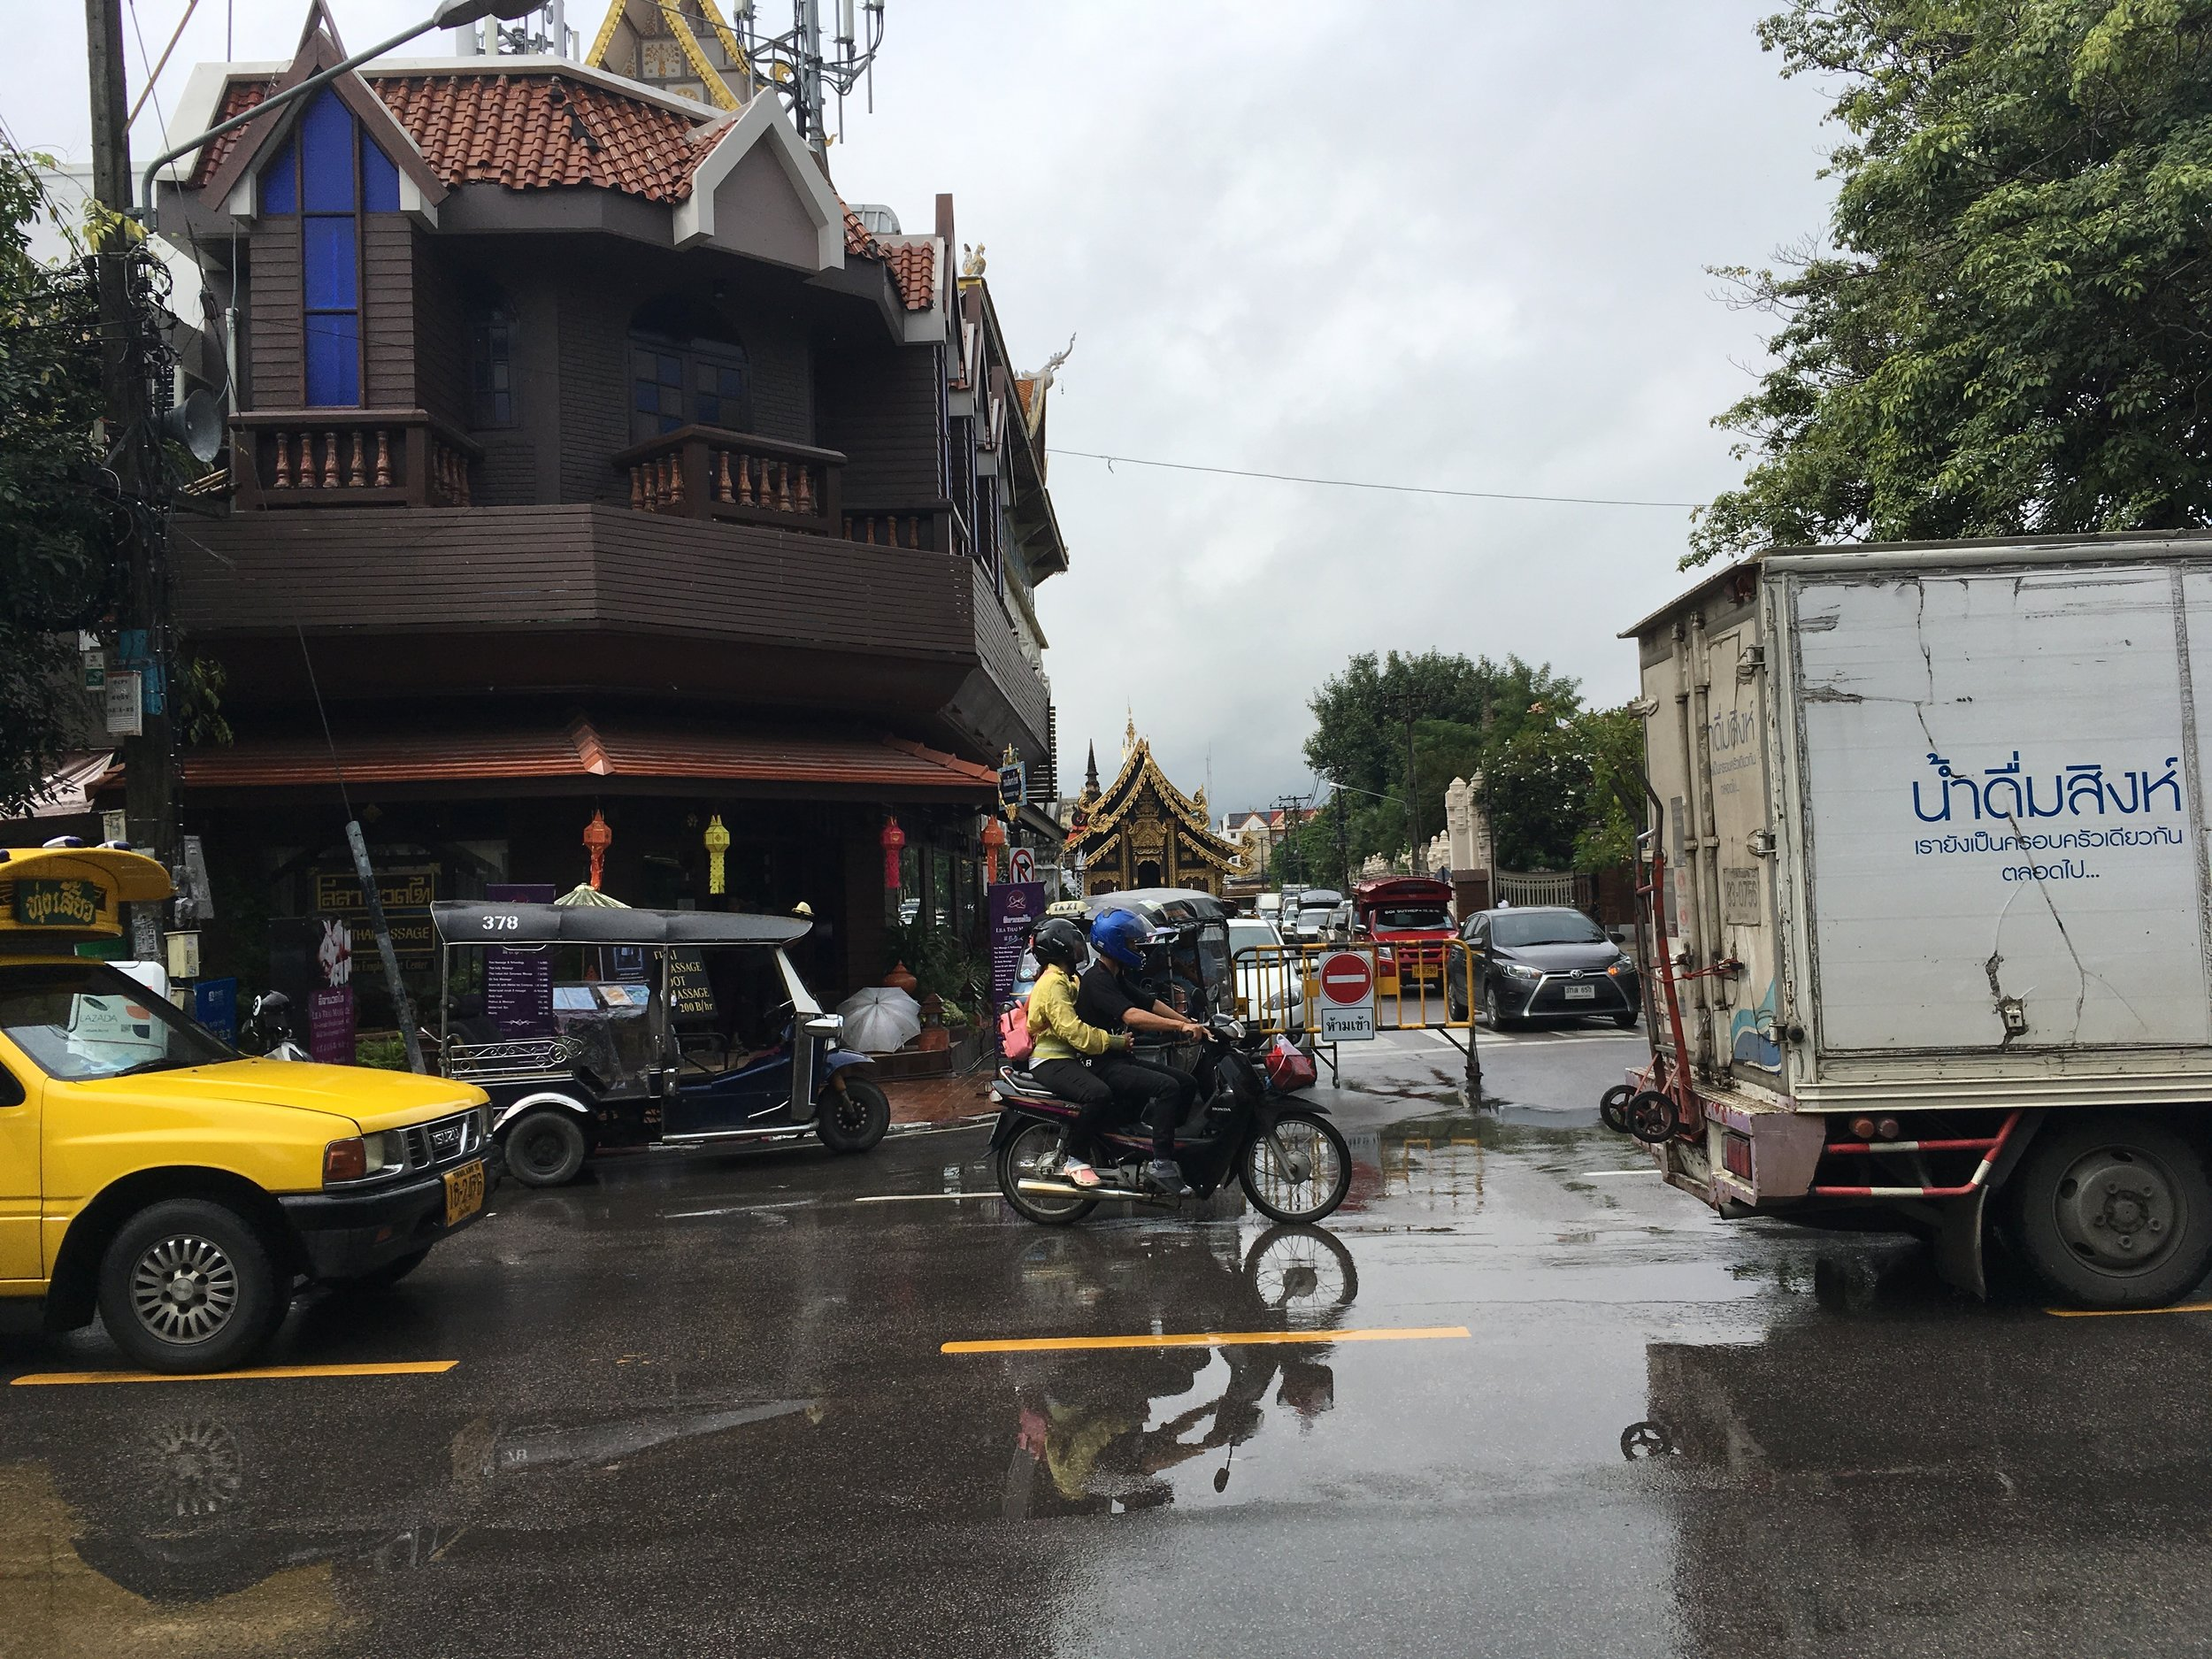 Tuk tuk is the blue one in front of the building